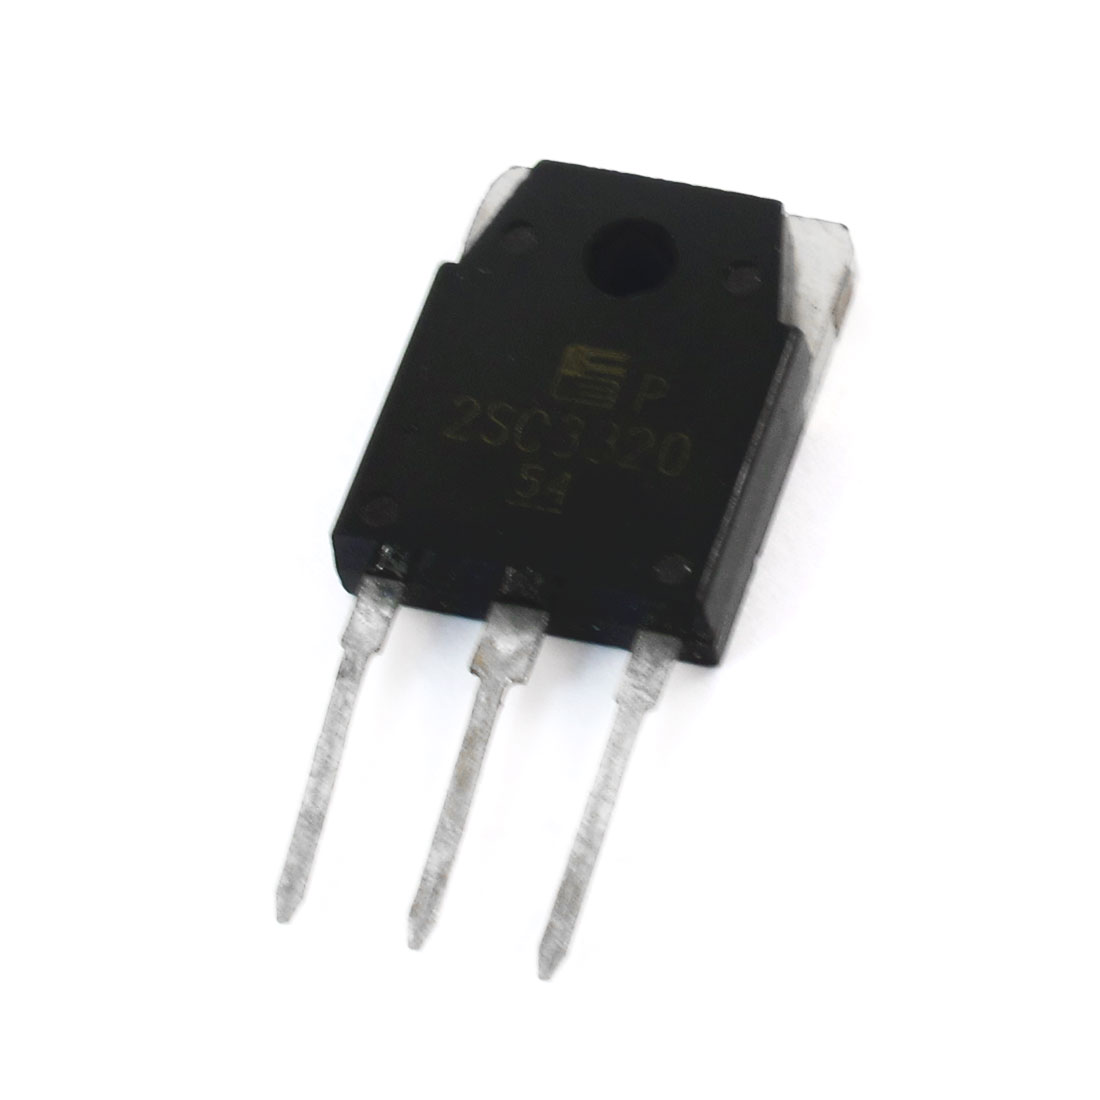 2SC3320 500V 15A High Speed Switching Silicon NPN Transistor